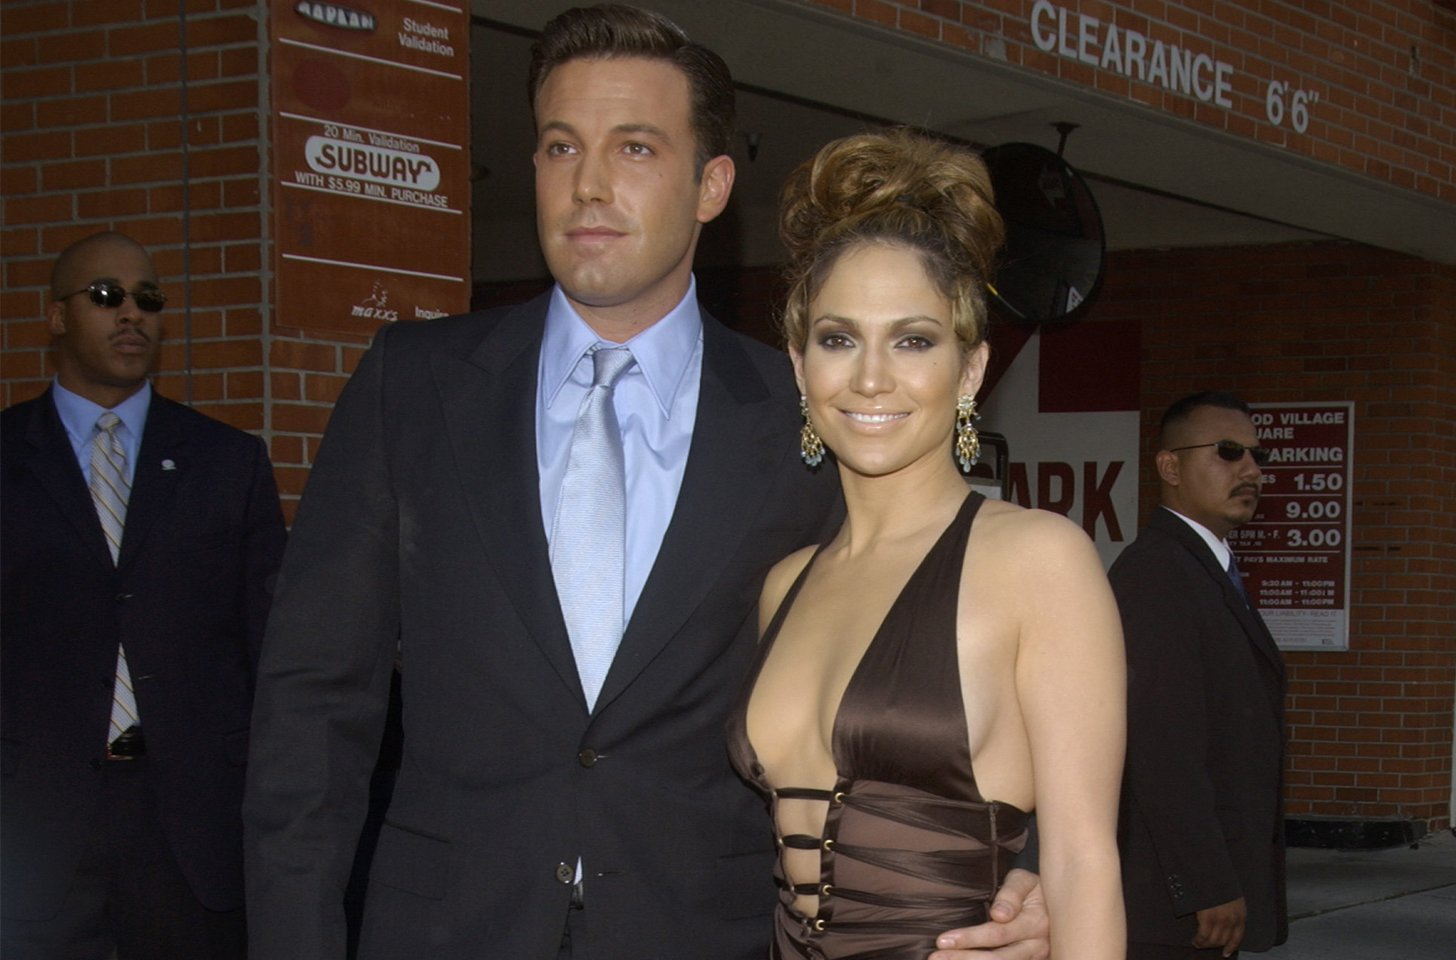 Report: Ben Affleck Moving In With Jennifer Lopez